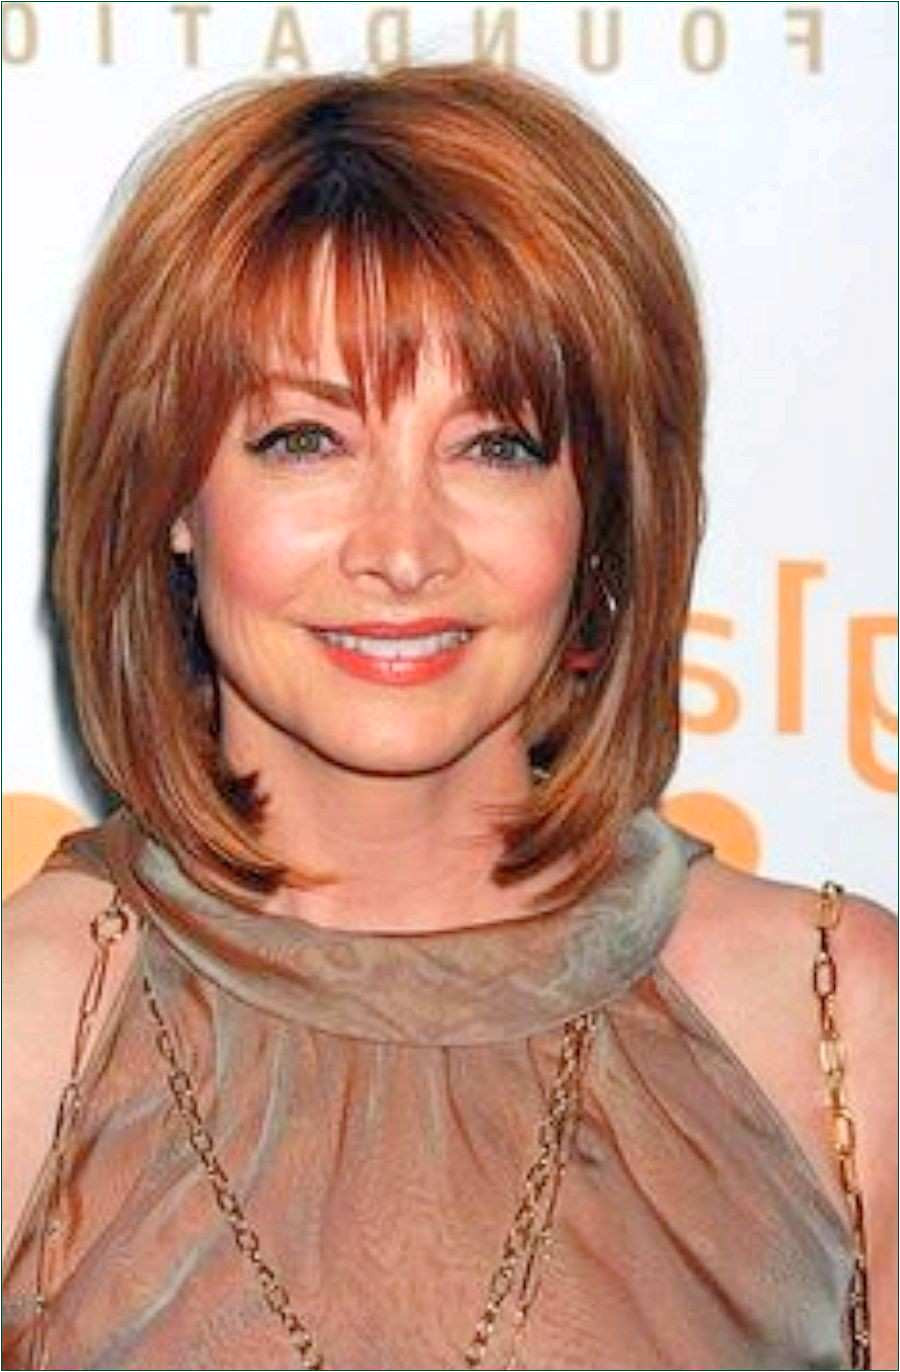 Medium Length Hairstyles for La s Over 60 Outstanding Z75o Long Hairstyles for Women Over 60 Stock